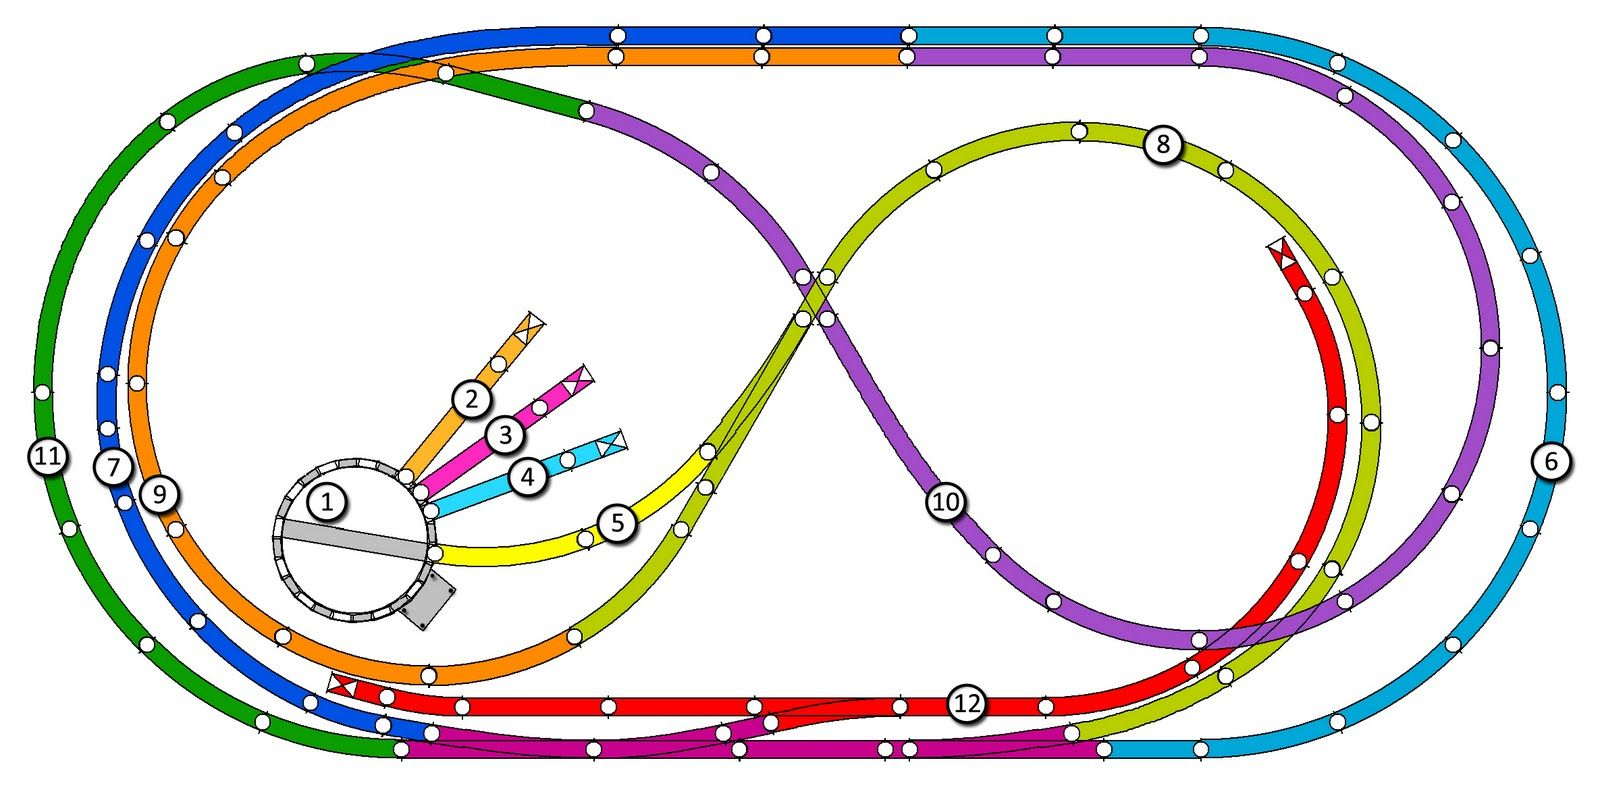 rr+train+track+wiring Created with Atlas Right Track